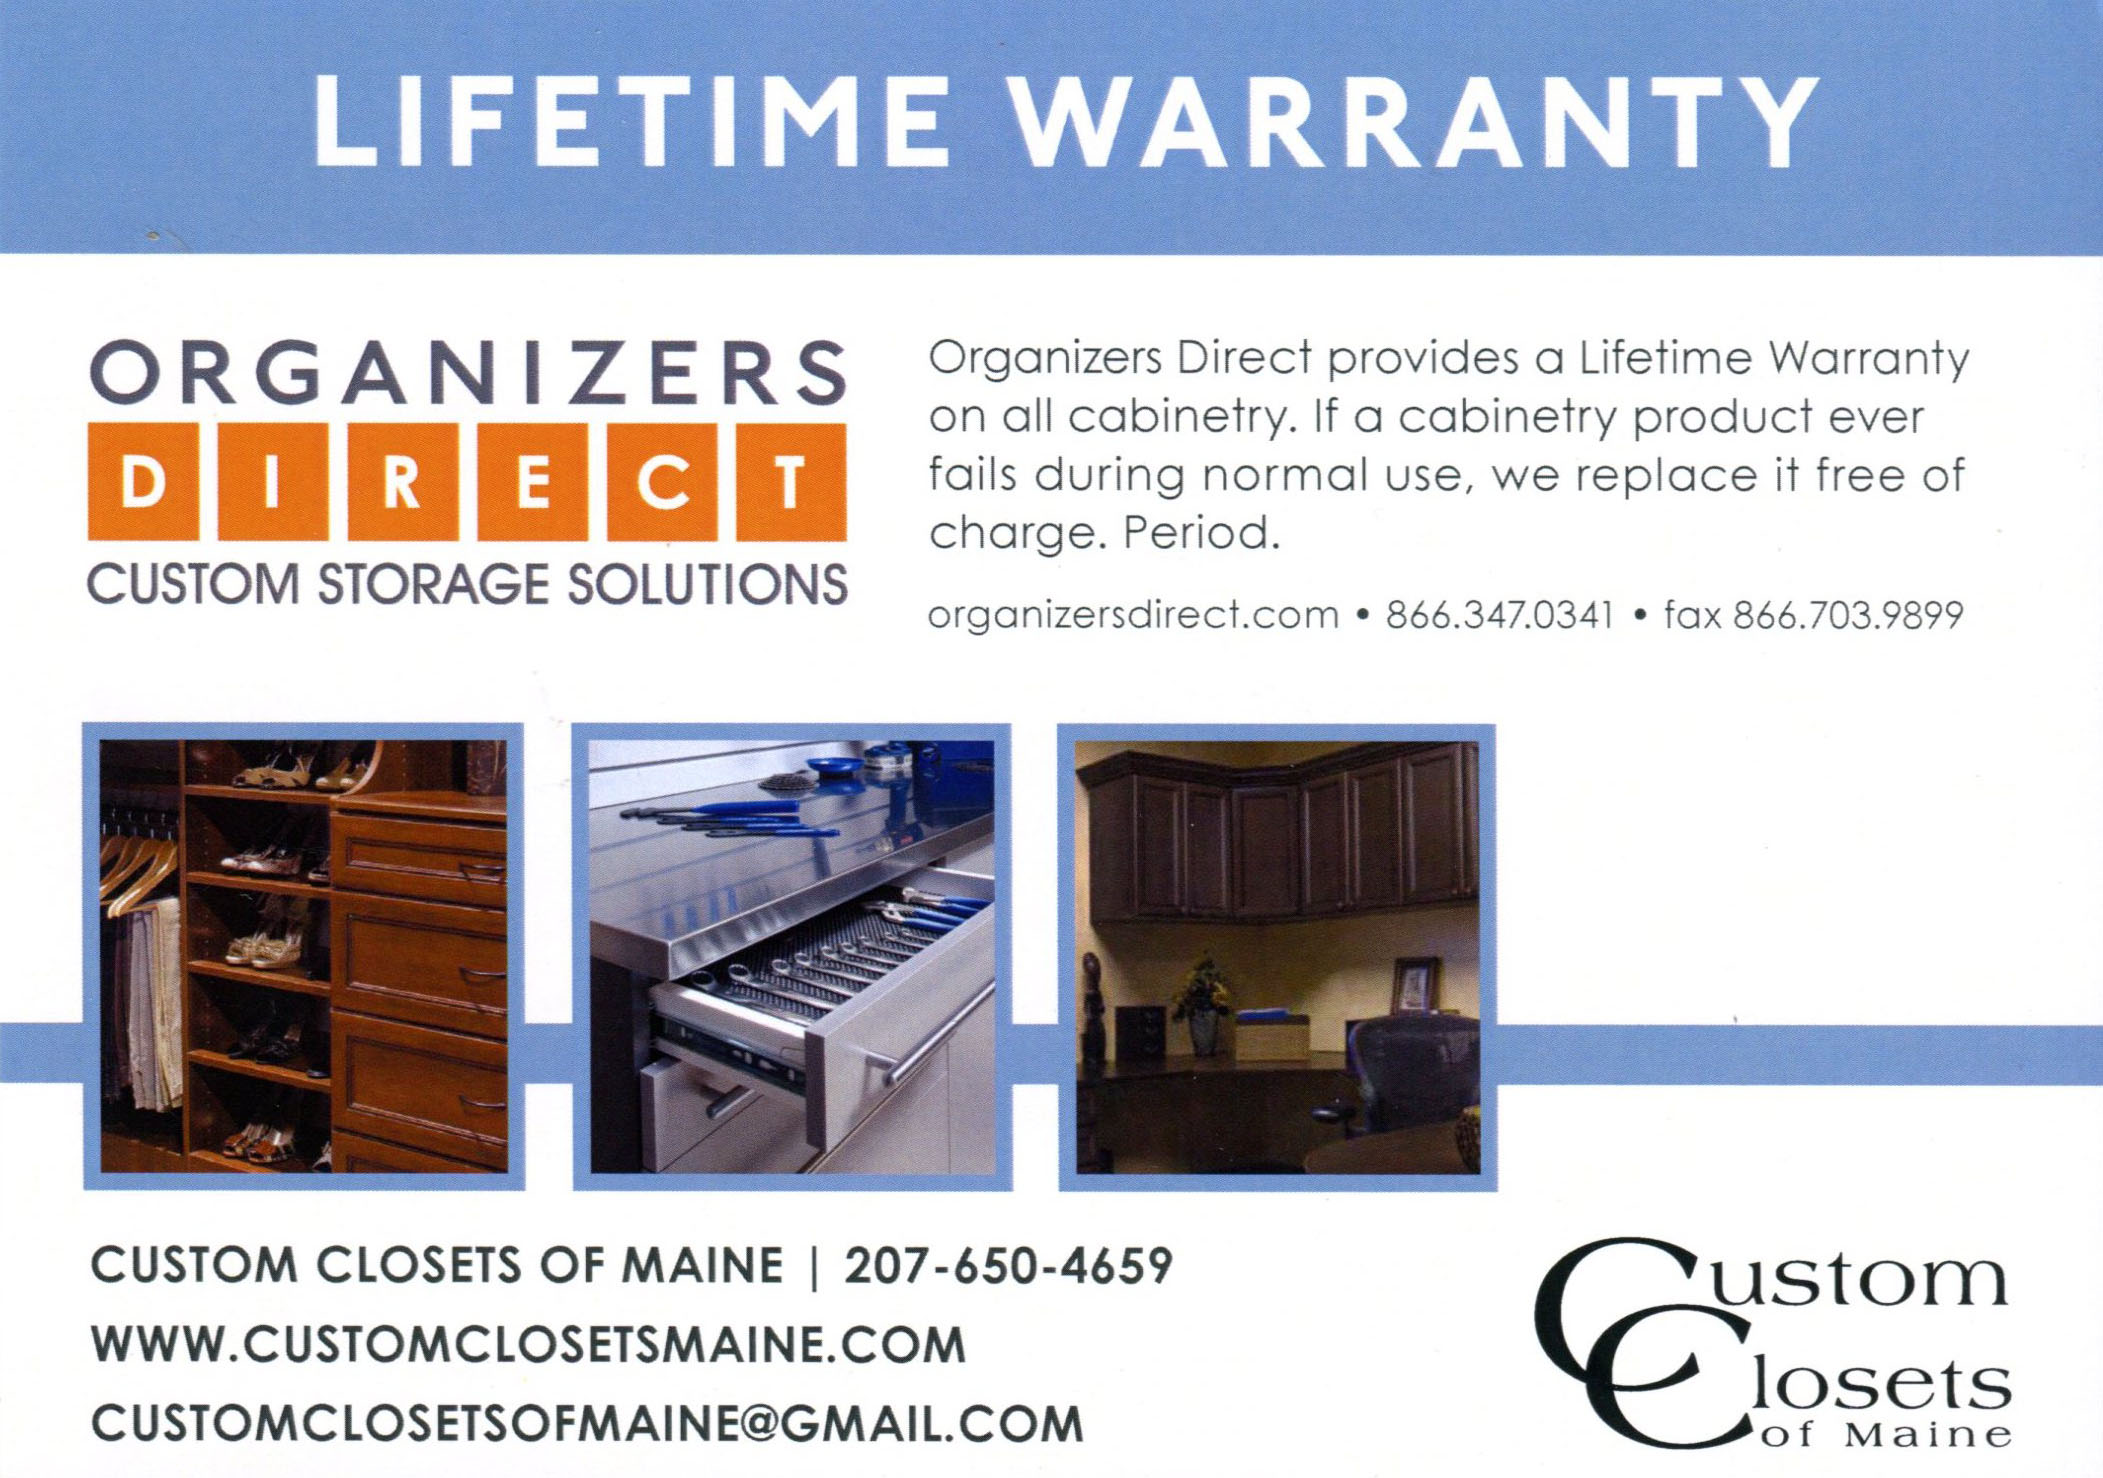 Lifetime Guarantee: If a cabinetry product ever fails during normal use, we will replace it free of charge, period.